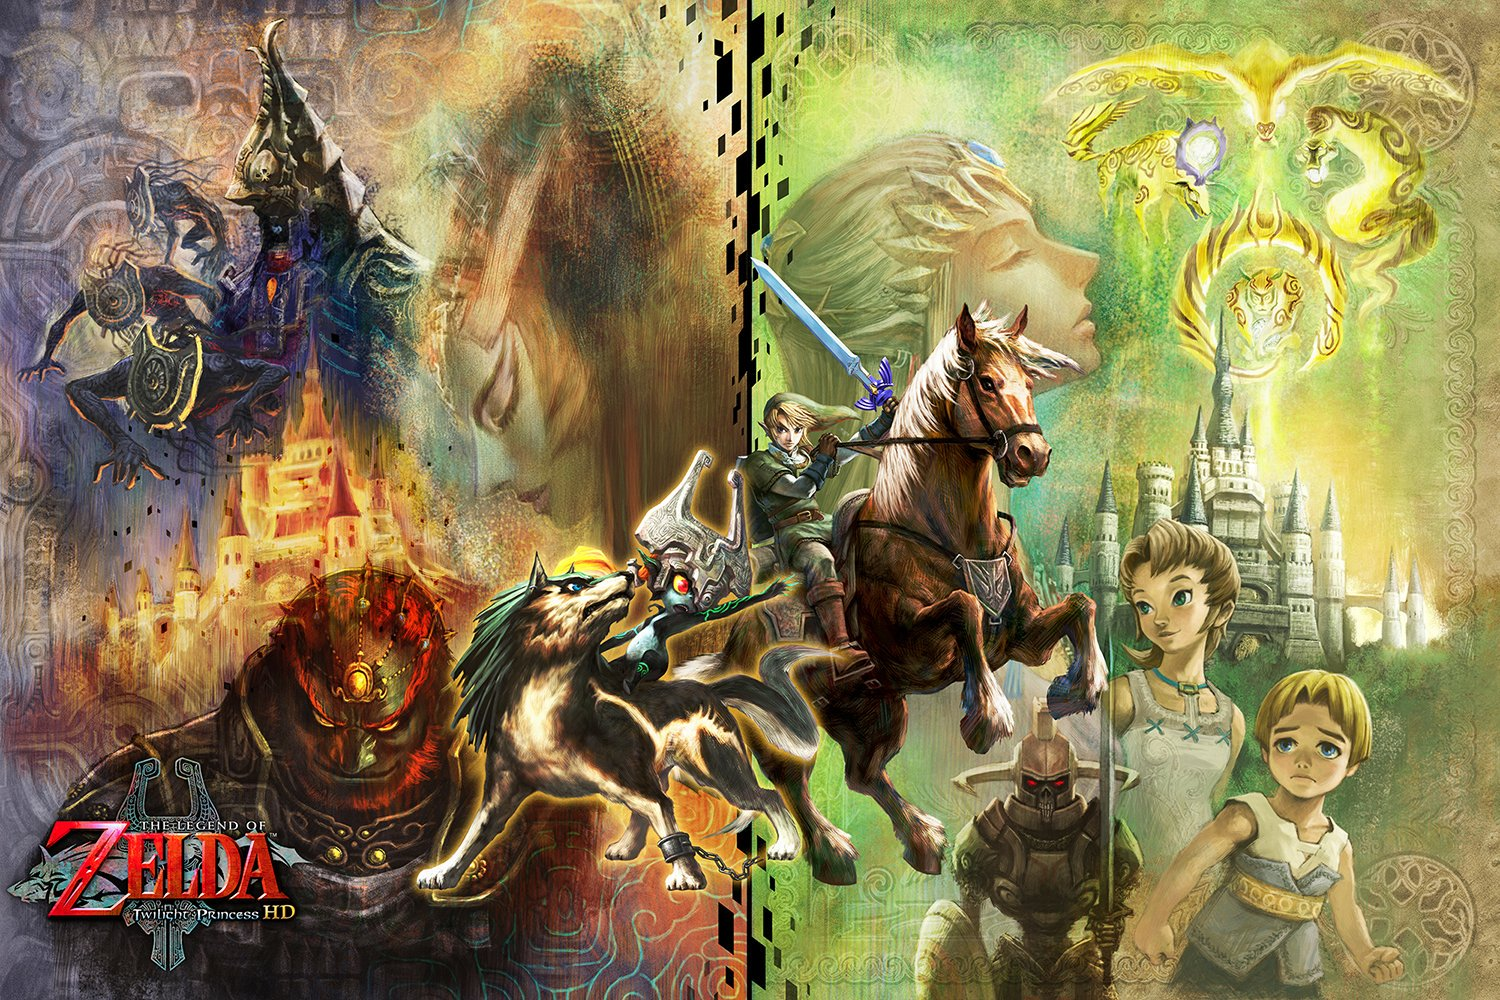 http://www.justpushstart.com/wp-content/uploads/2016/03/1453340511-the-legend-of-zelda-twilight-princess-hd-1.jpg